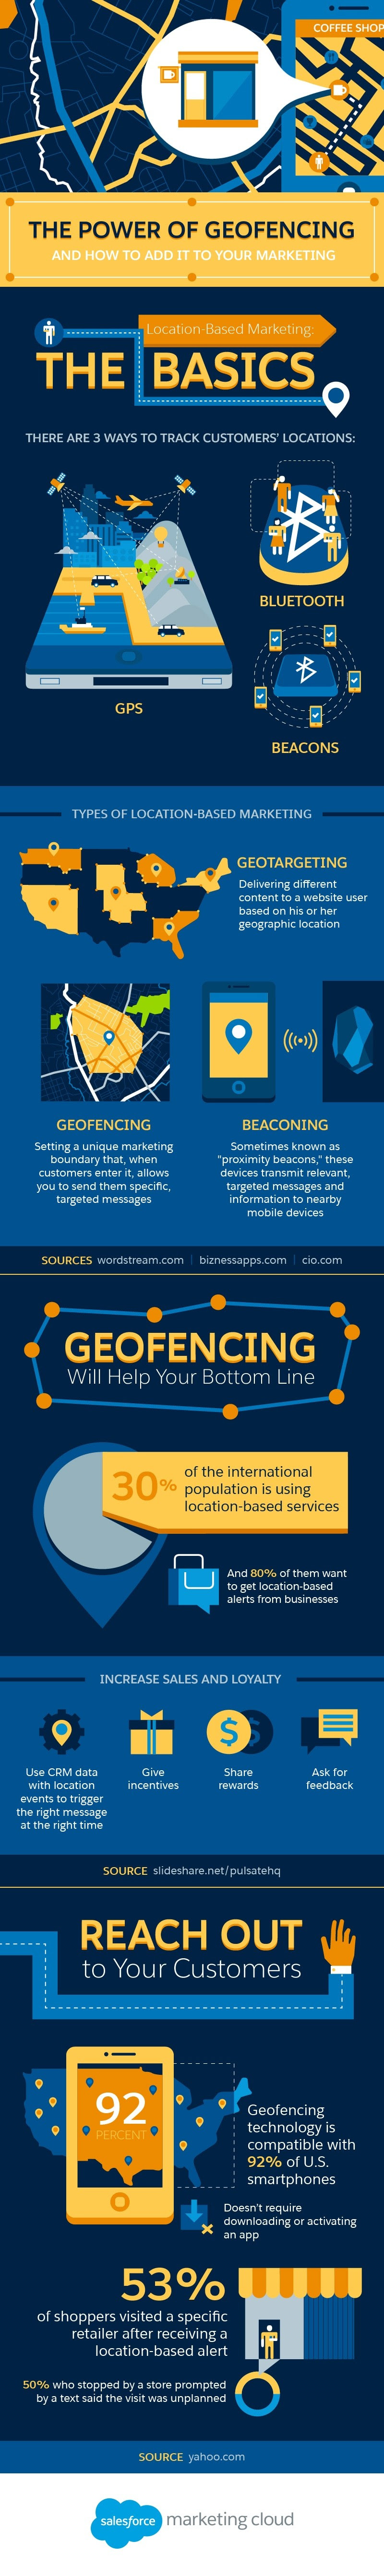 The Power of Geofencing and How to Add It to Your Marketing #Infographic